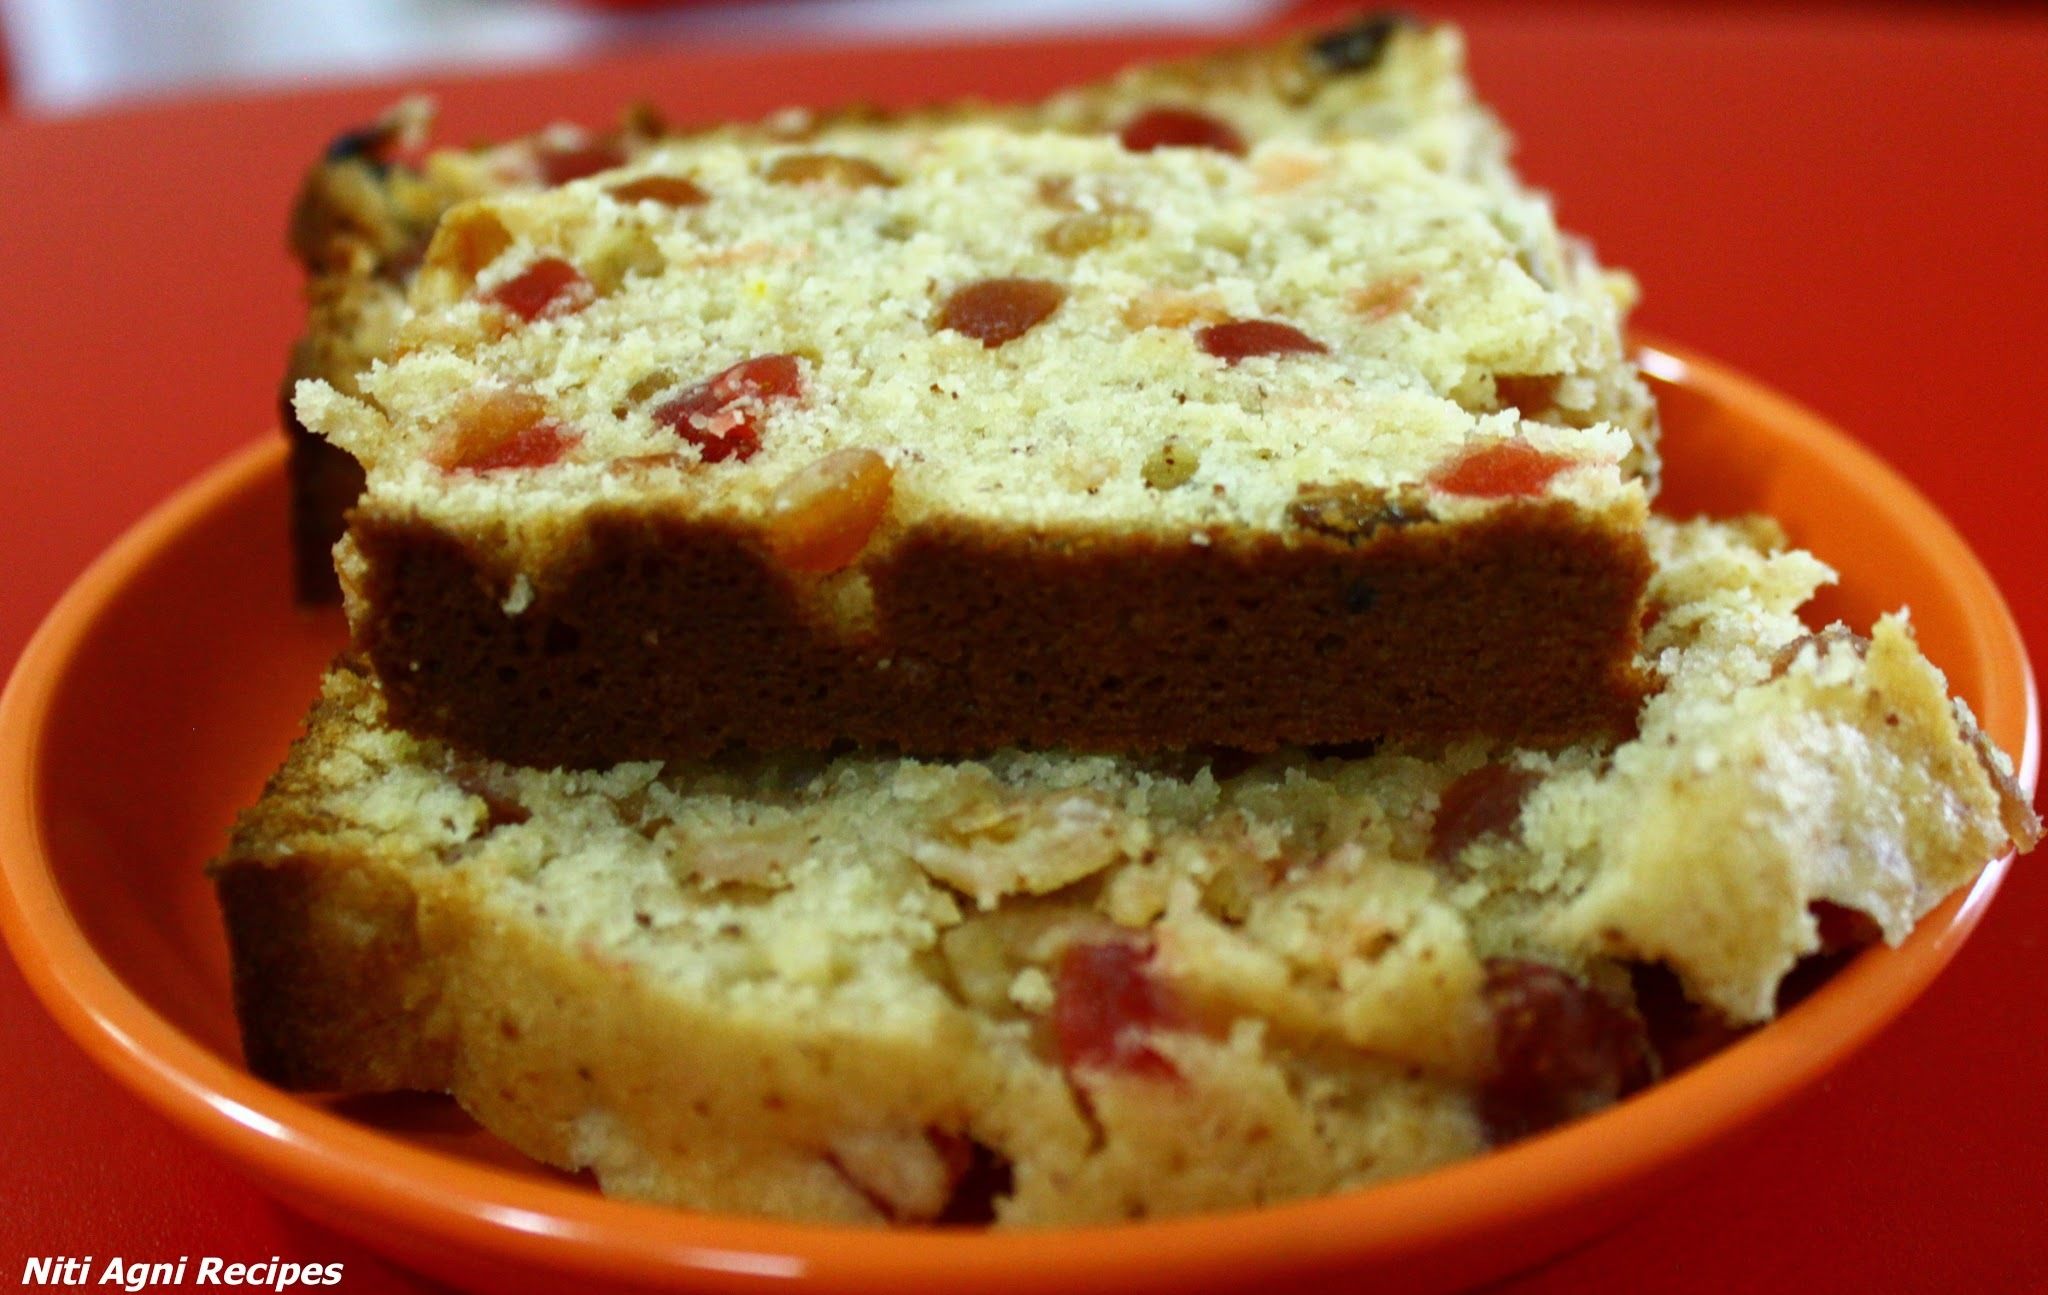 Fruit Cake (No alcohol)